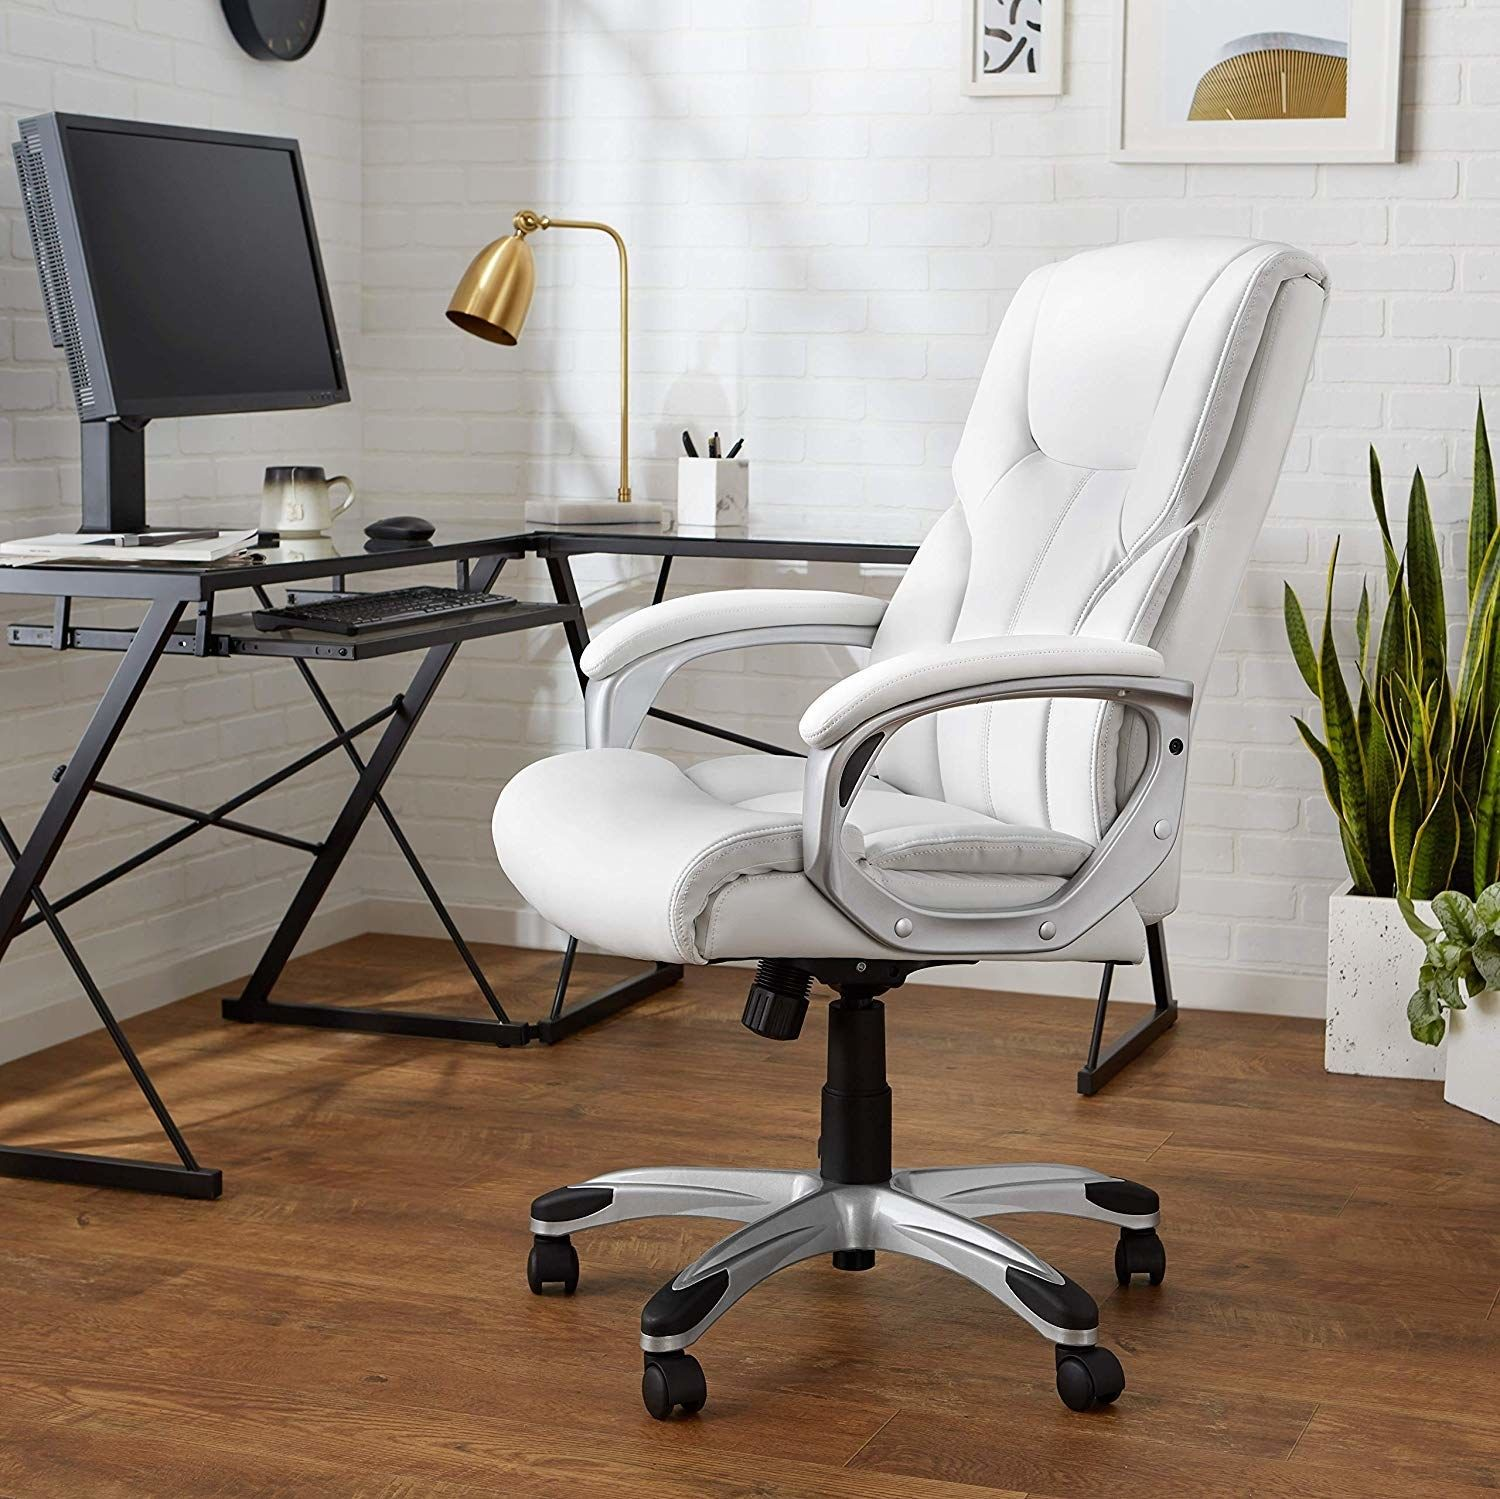 41 Practical Things To Buy With Your Tax Refund Home Office Chairs Best Office Chair Comfy Office Chair